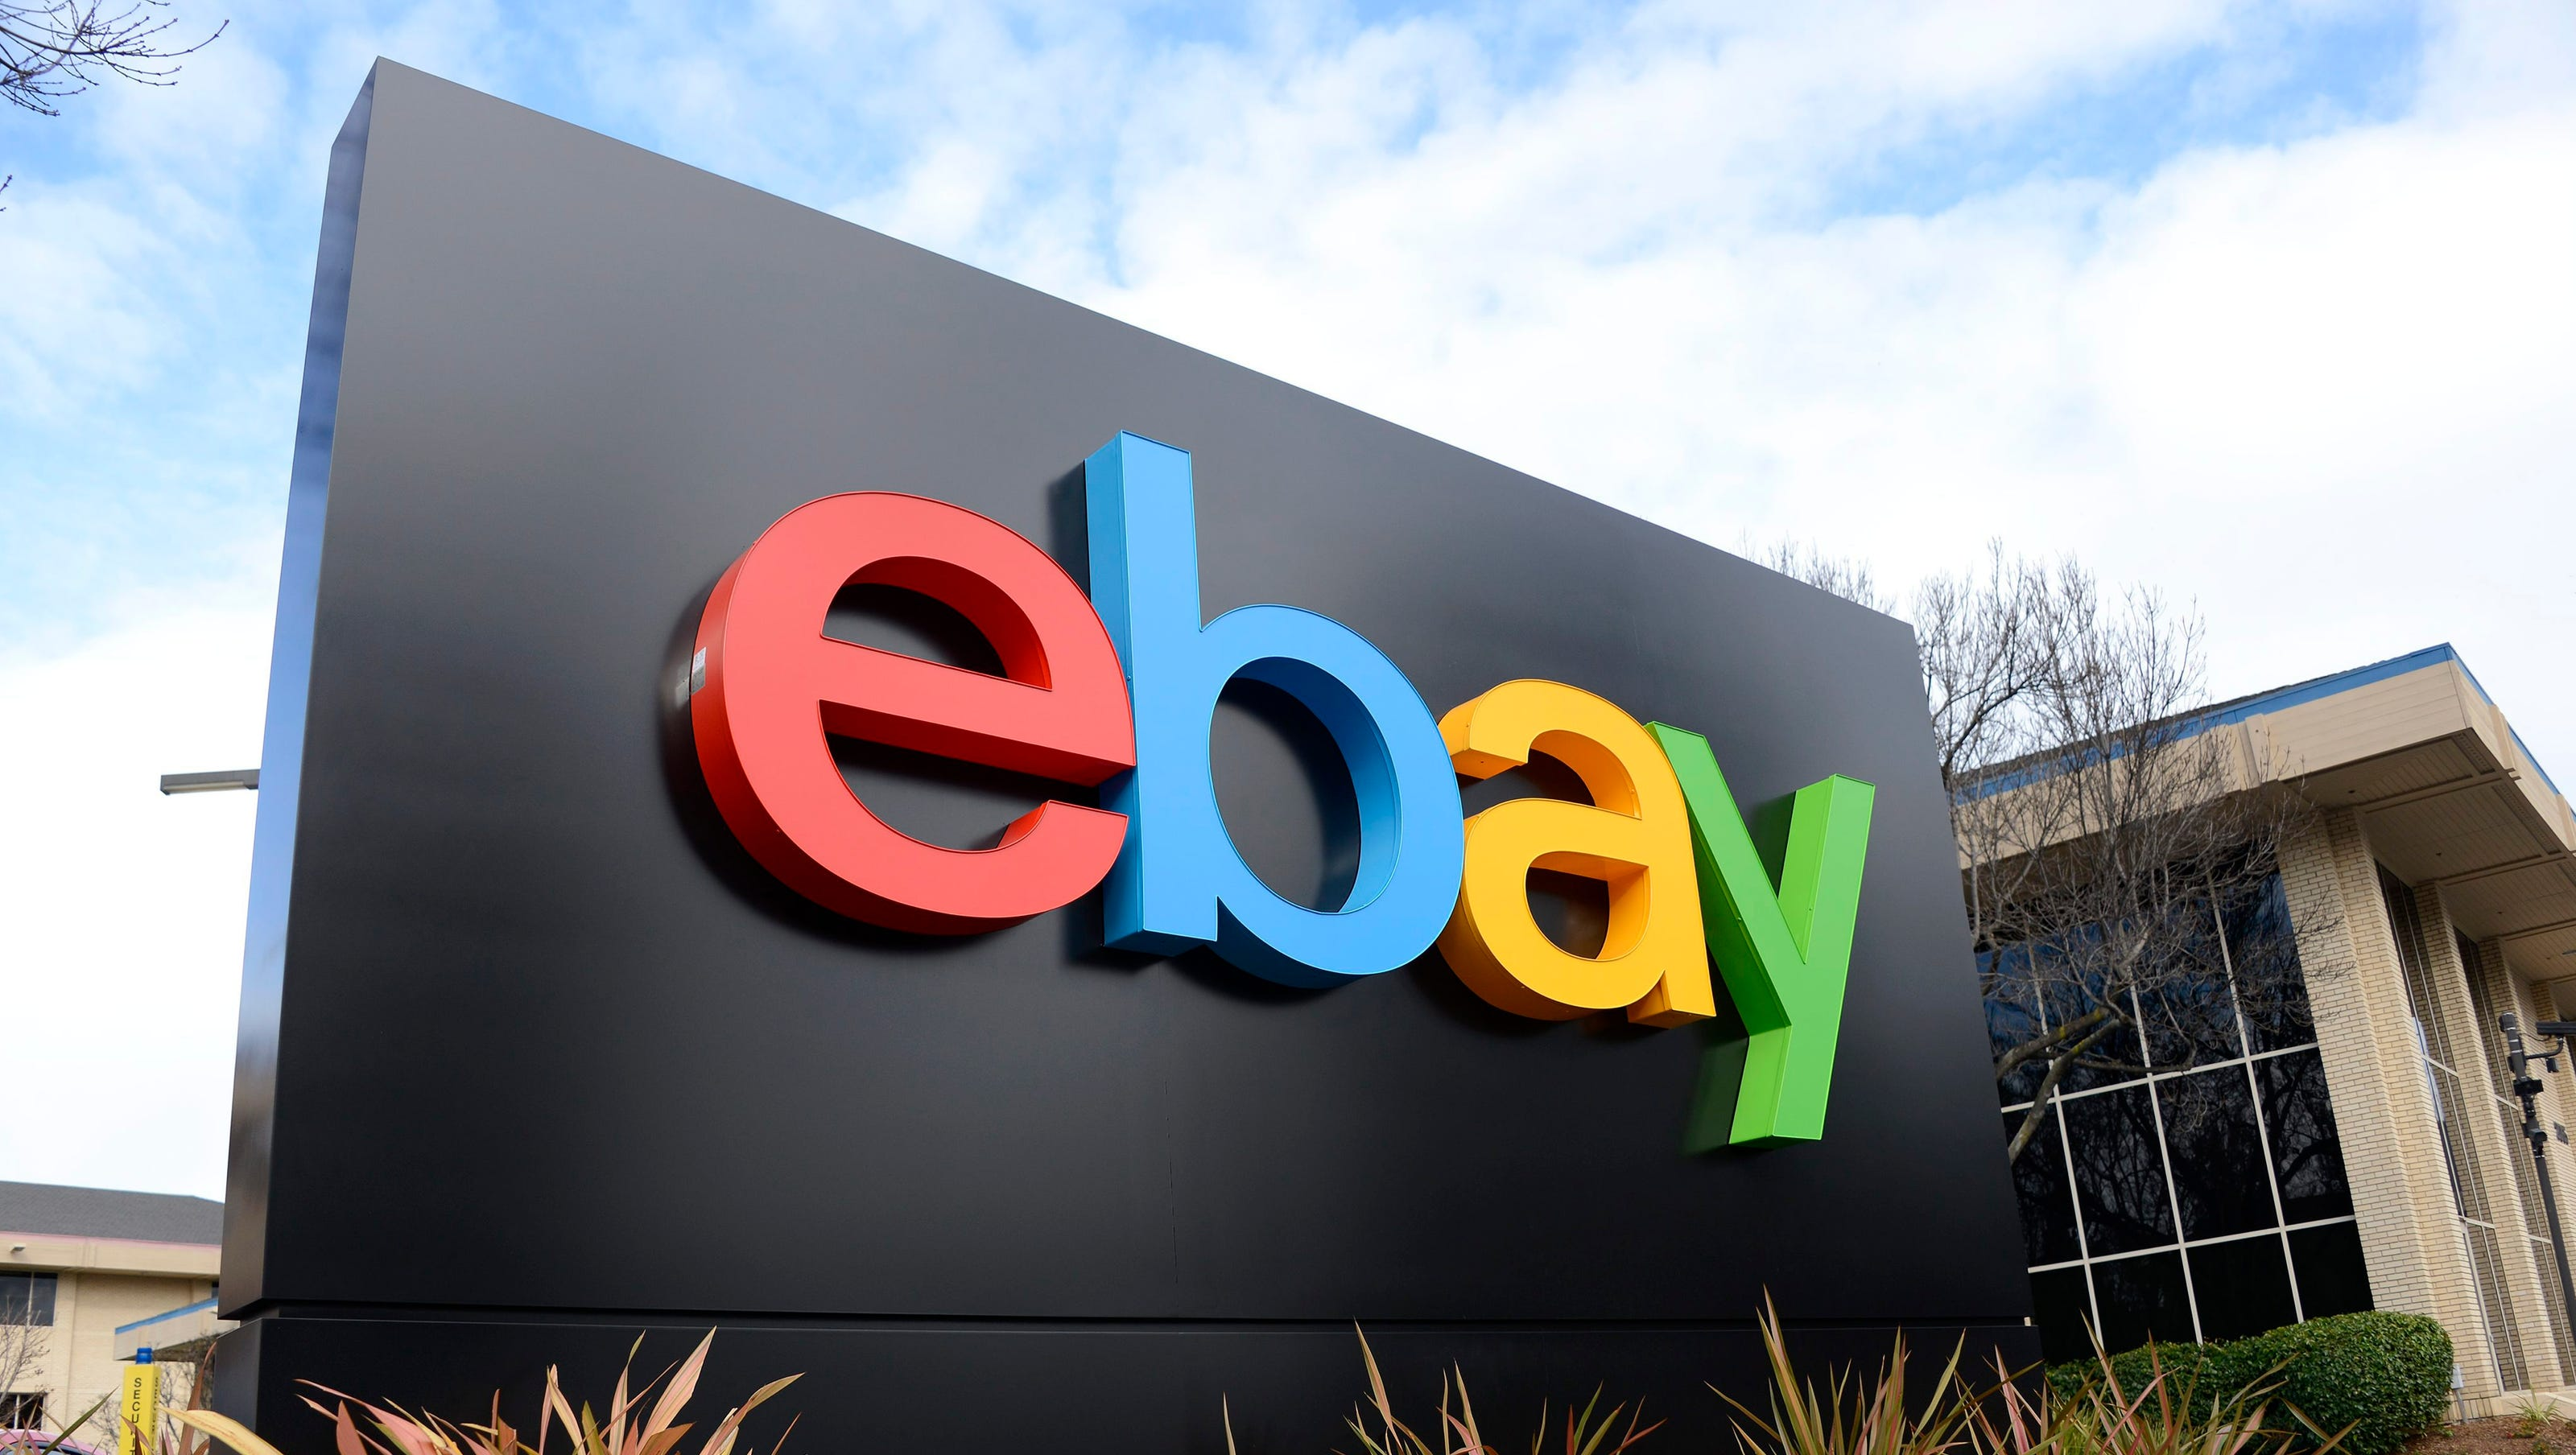 Ebay Is Dropping Paypal If You Re A Customer Here S What You Need